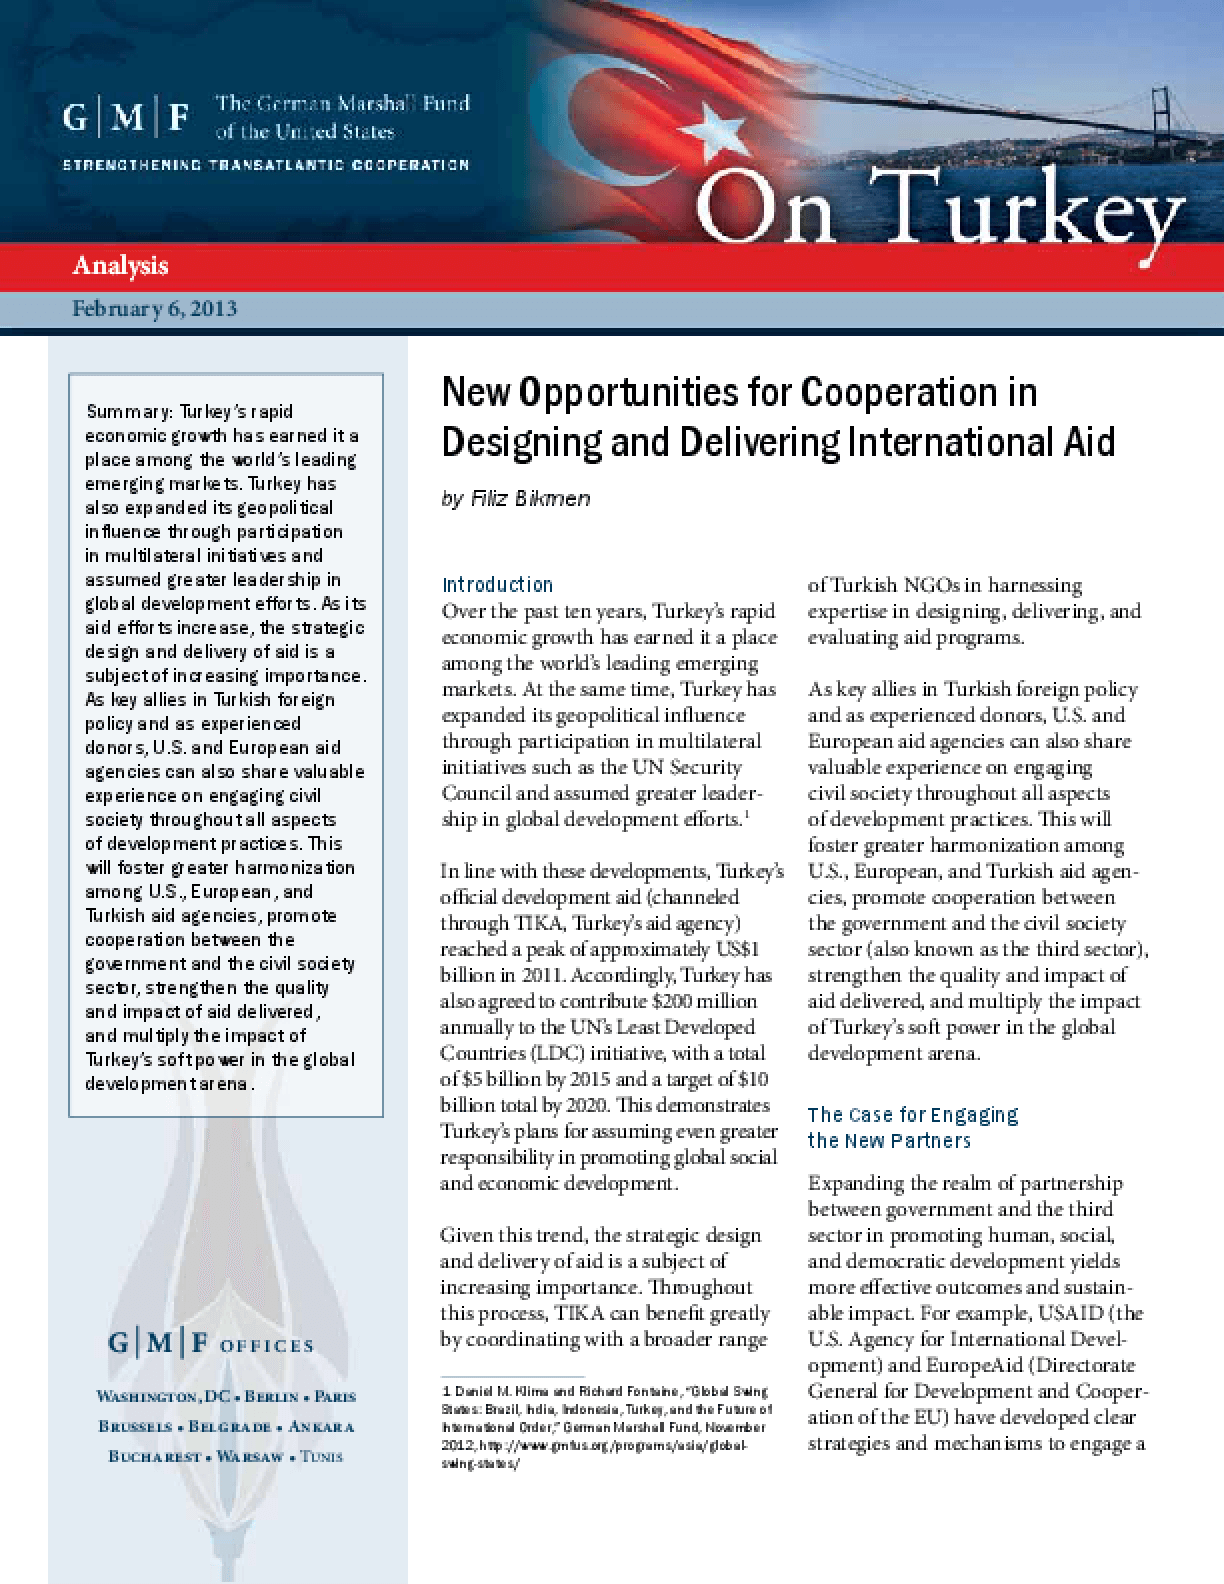 New Opportunities for Cooperation in Designing and Delivering International Aid